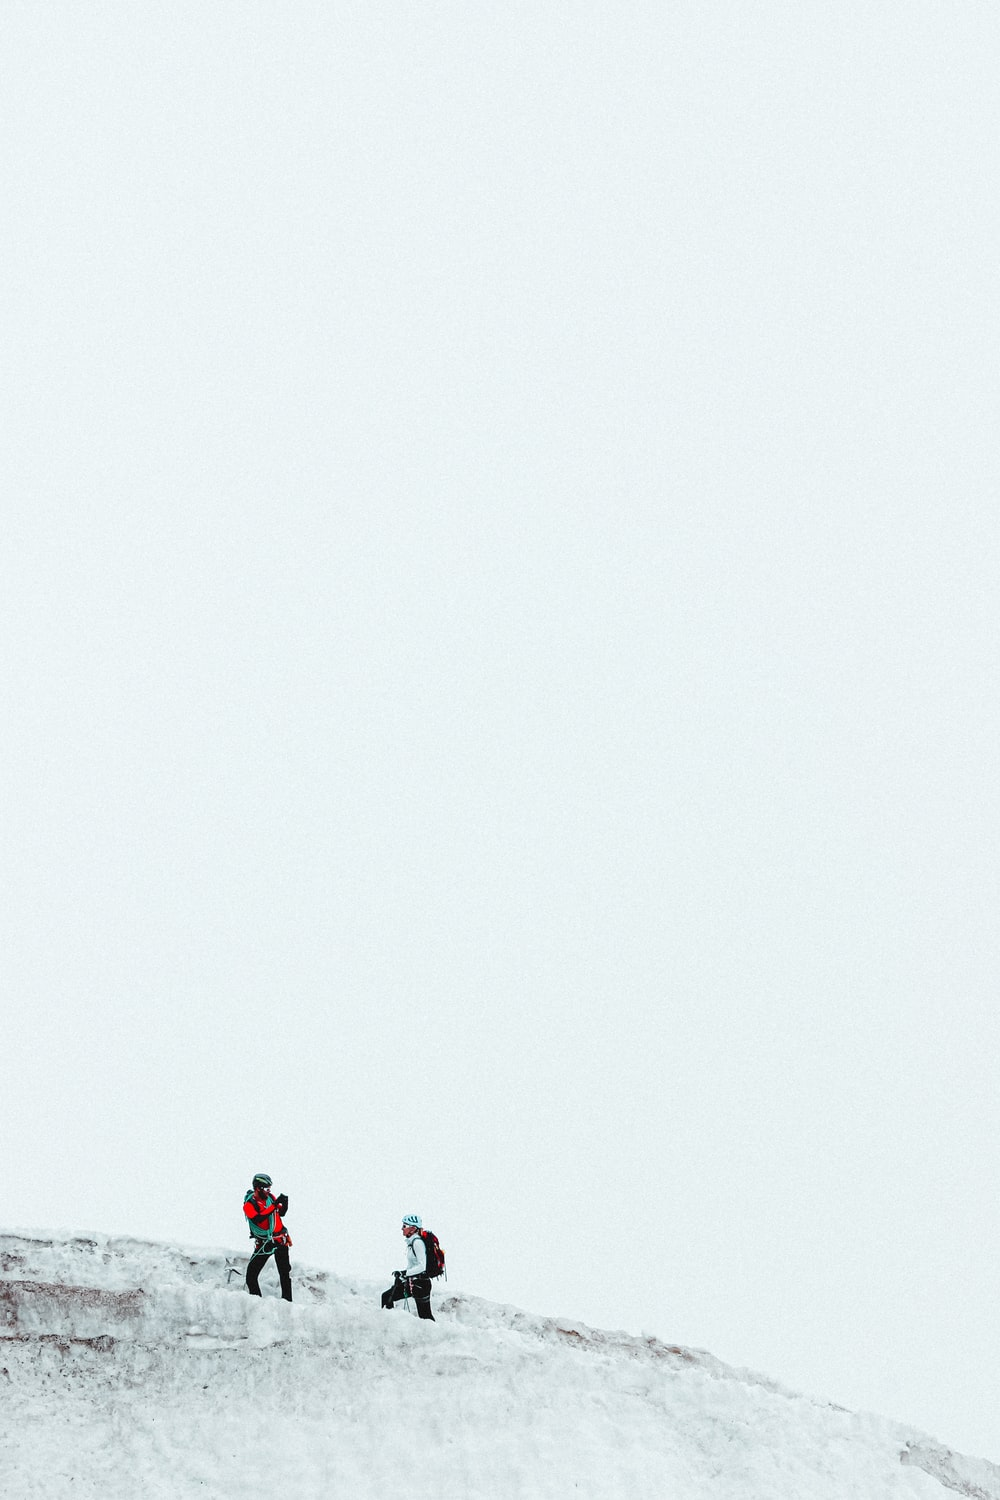 people on snow covered ground under white sky during daytime